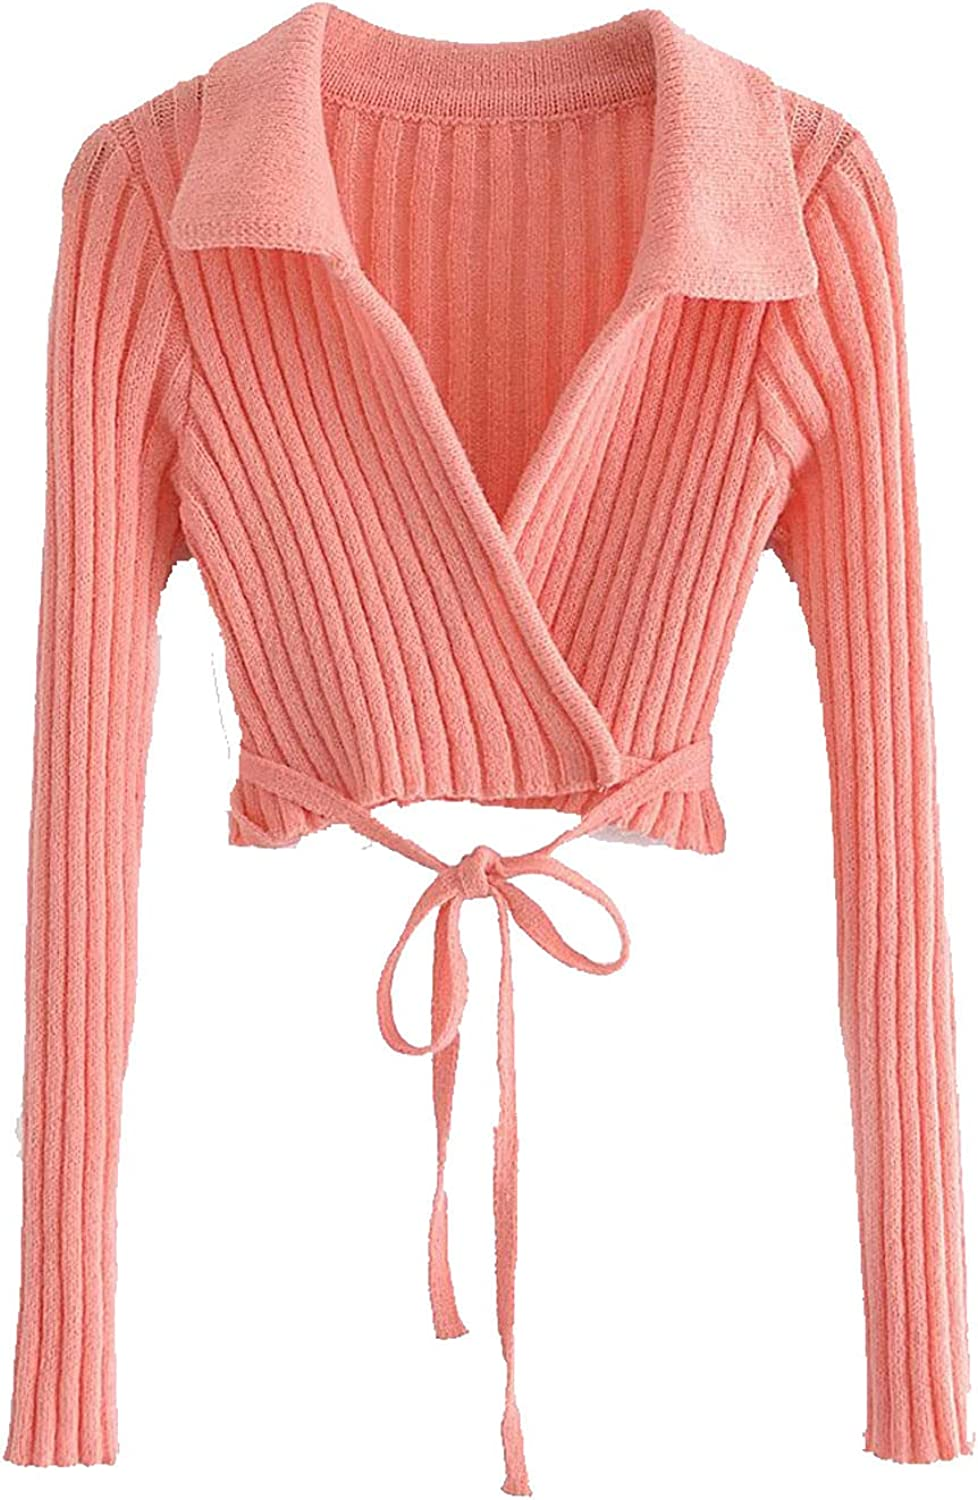 Sweater for Women Lace Up Crop Shrug Sweaters V-Neck Tight Long Sleeve Cardigan Knit Sweaters